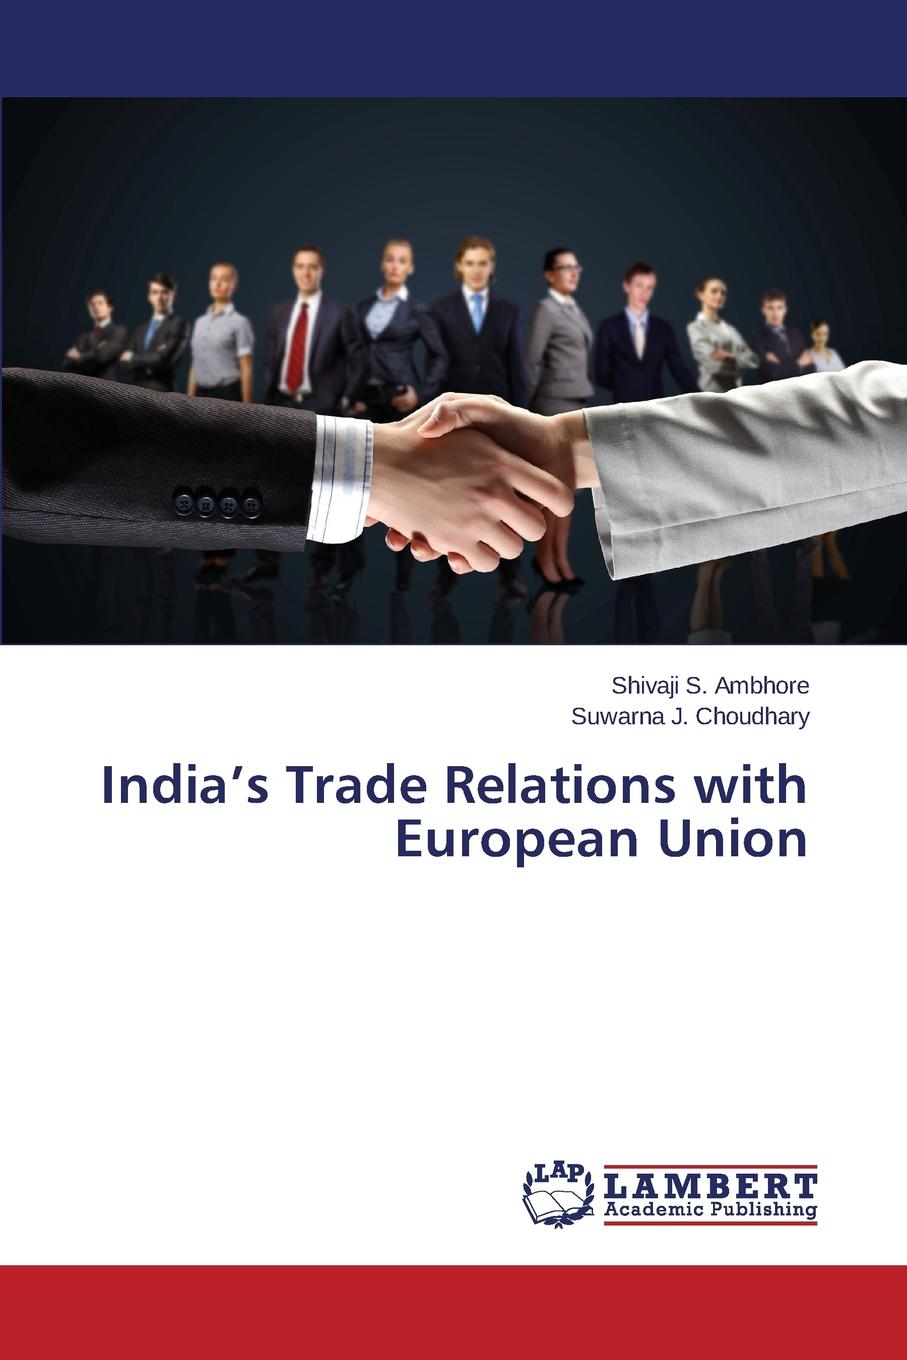 Ambhore Shivaji S., Choudhary Suwarna J. India.s Trade Relations with European Union the world trade organization knowledge agreements